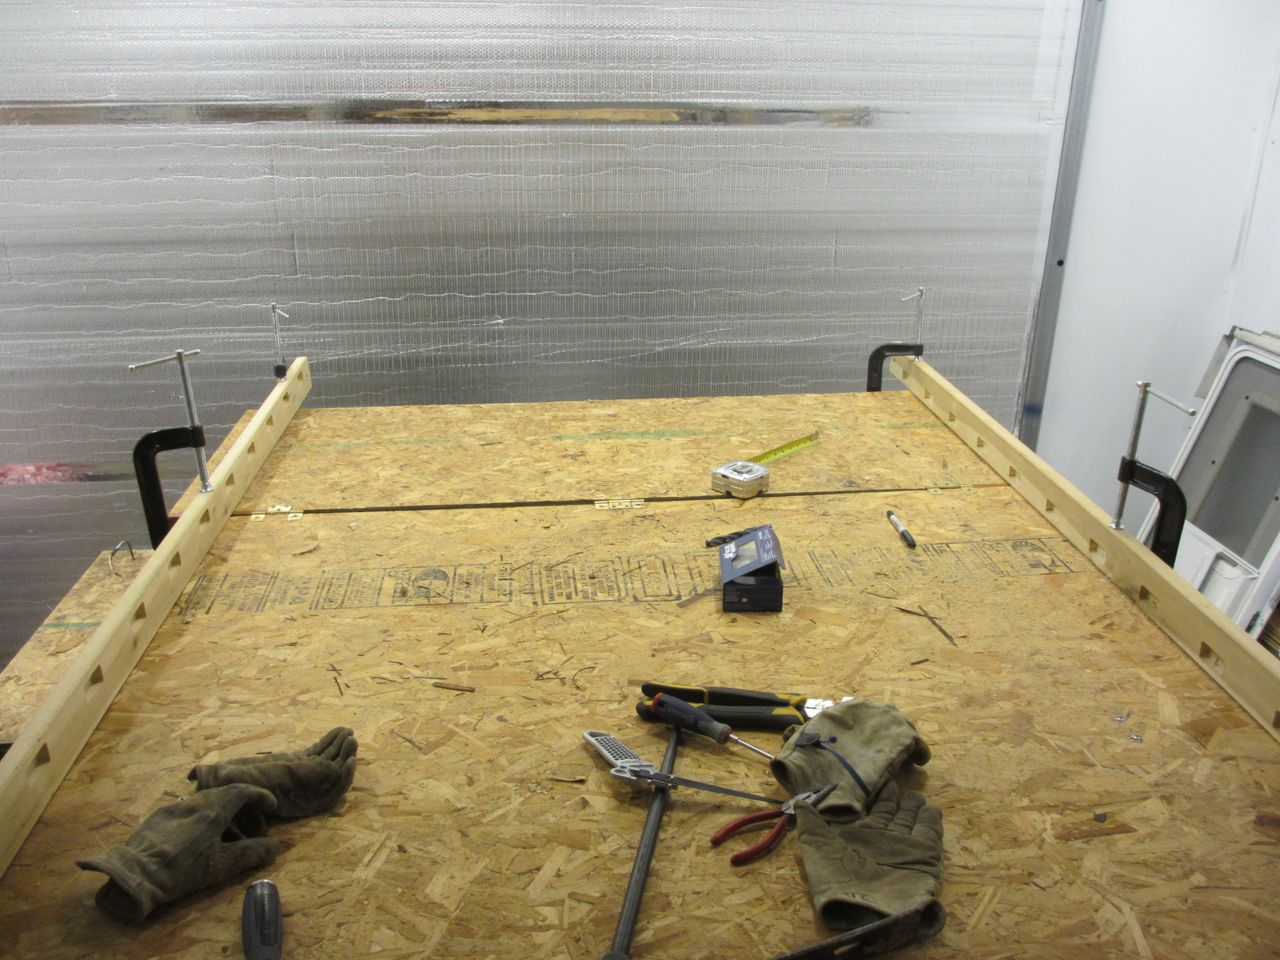 Set up boards indicating the new length.